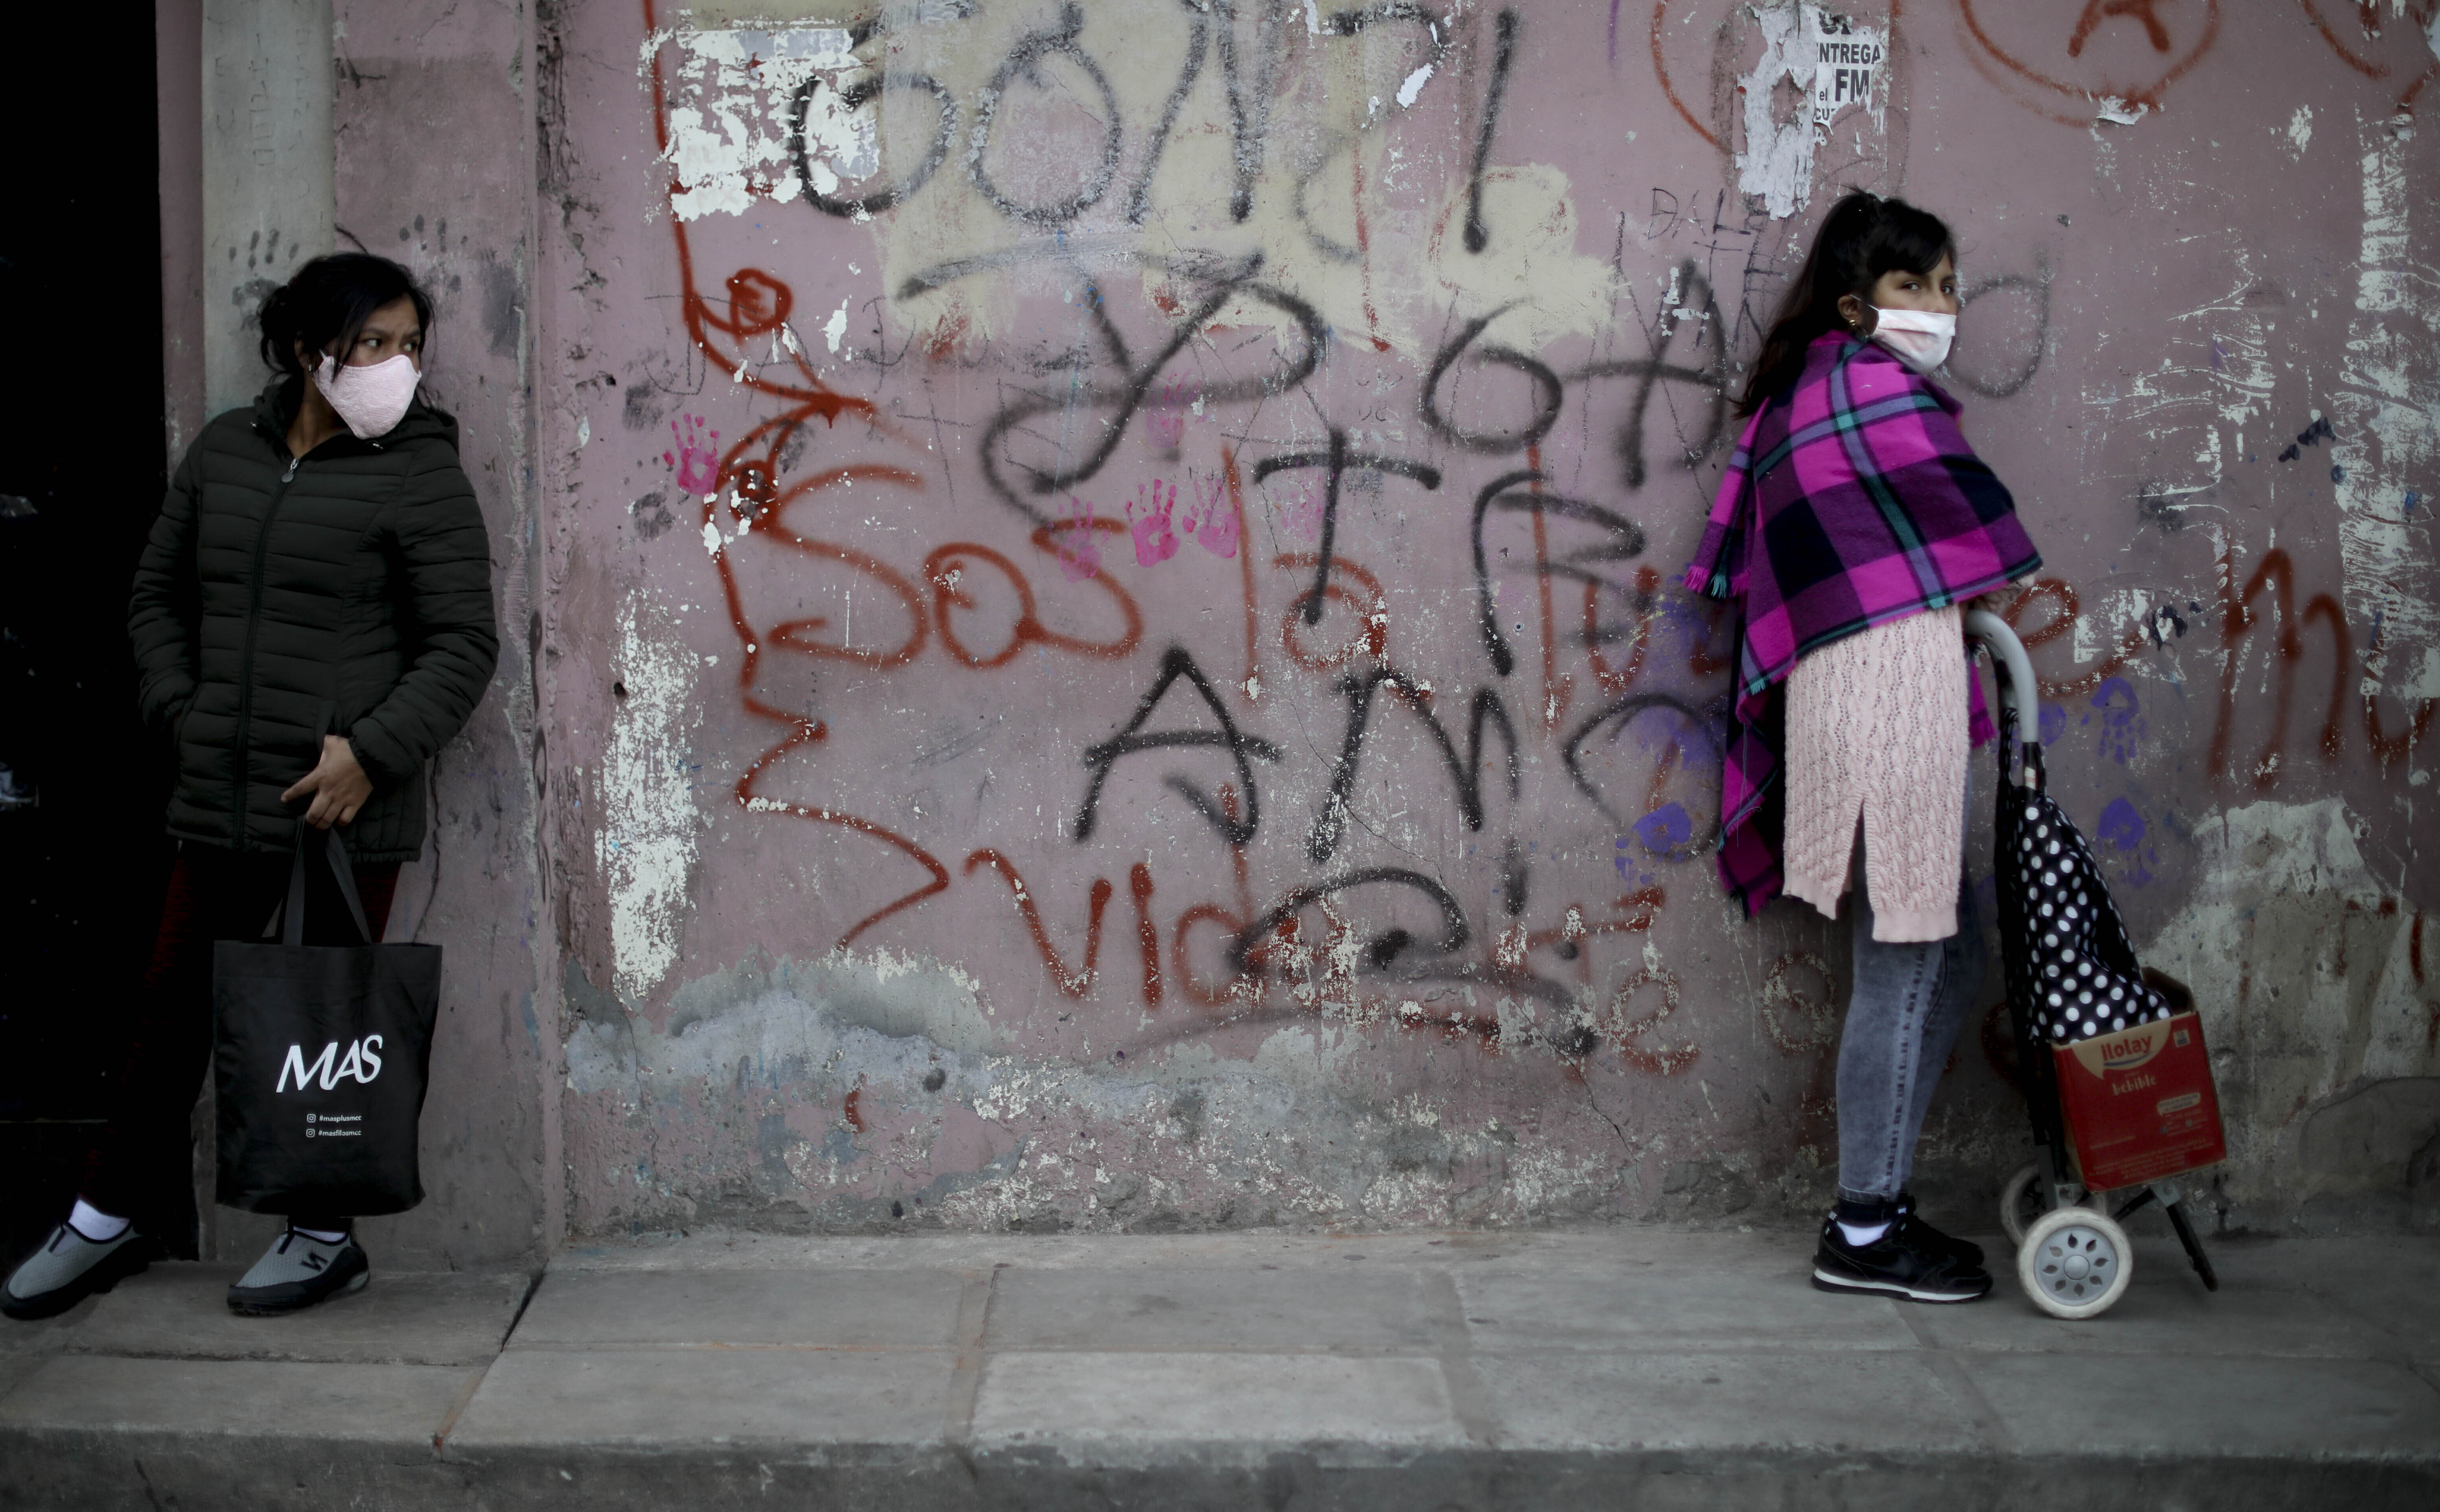 Women stand at a distance as they wait in line for a plate of food at a soup kitchen in the 1.11.14 neighborhood during a government-ordered lockdown to curb the spread of the coronavirus in Buenos Aires, Argentina, Friday, May 29, 2020. (AP Photo/Natacha Pisarenko)